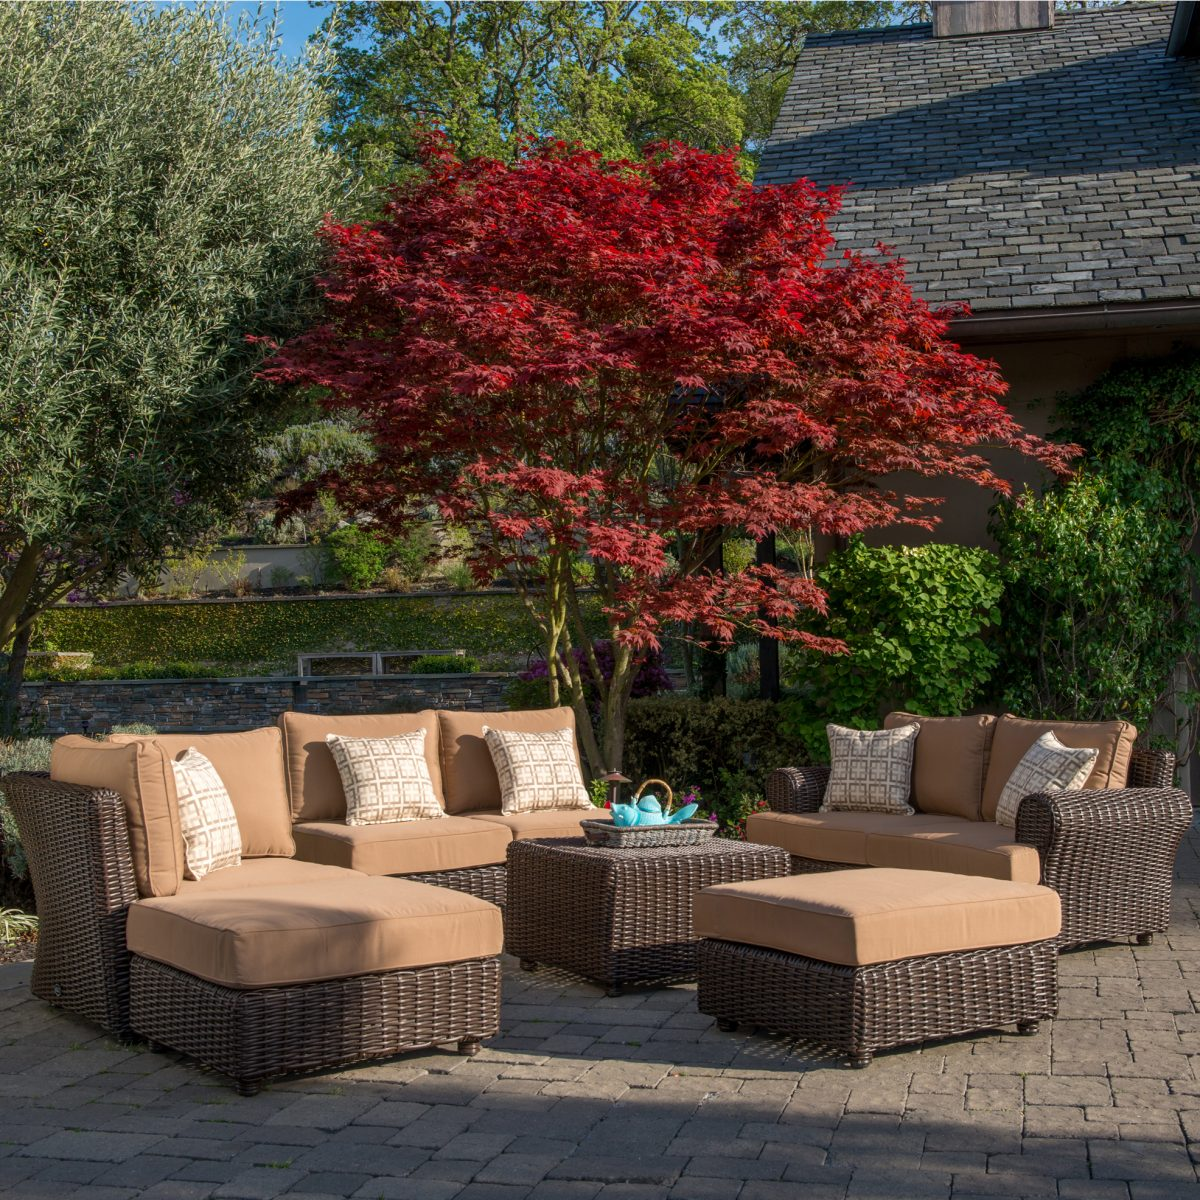 Why Wicker Furniture is Great for Your Outdoor Living ... on Outdoor Living Wicker id=52176